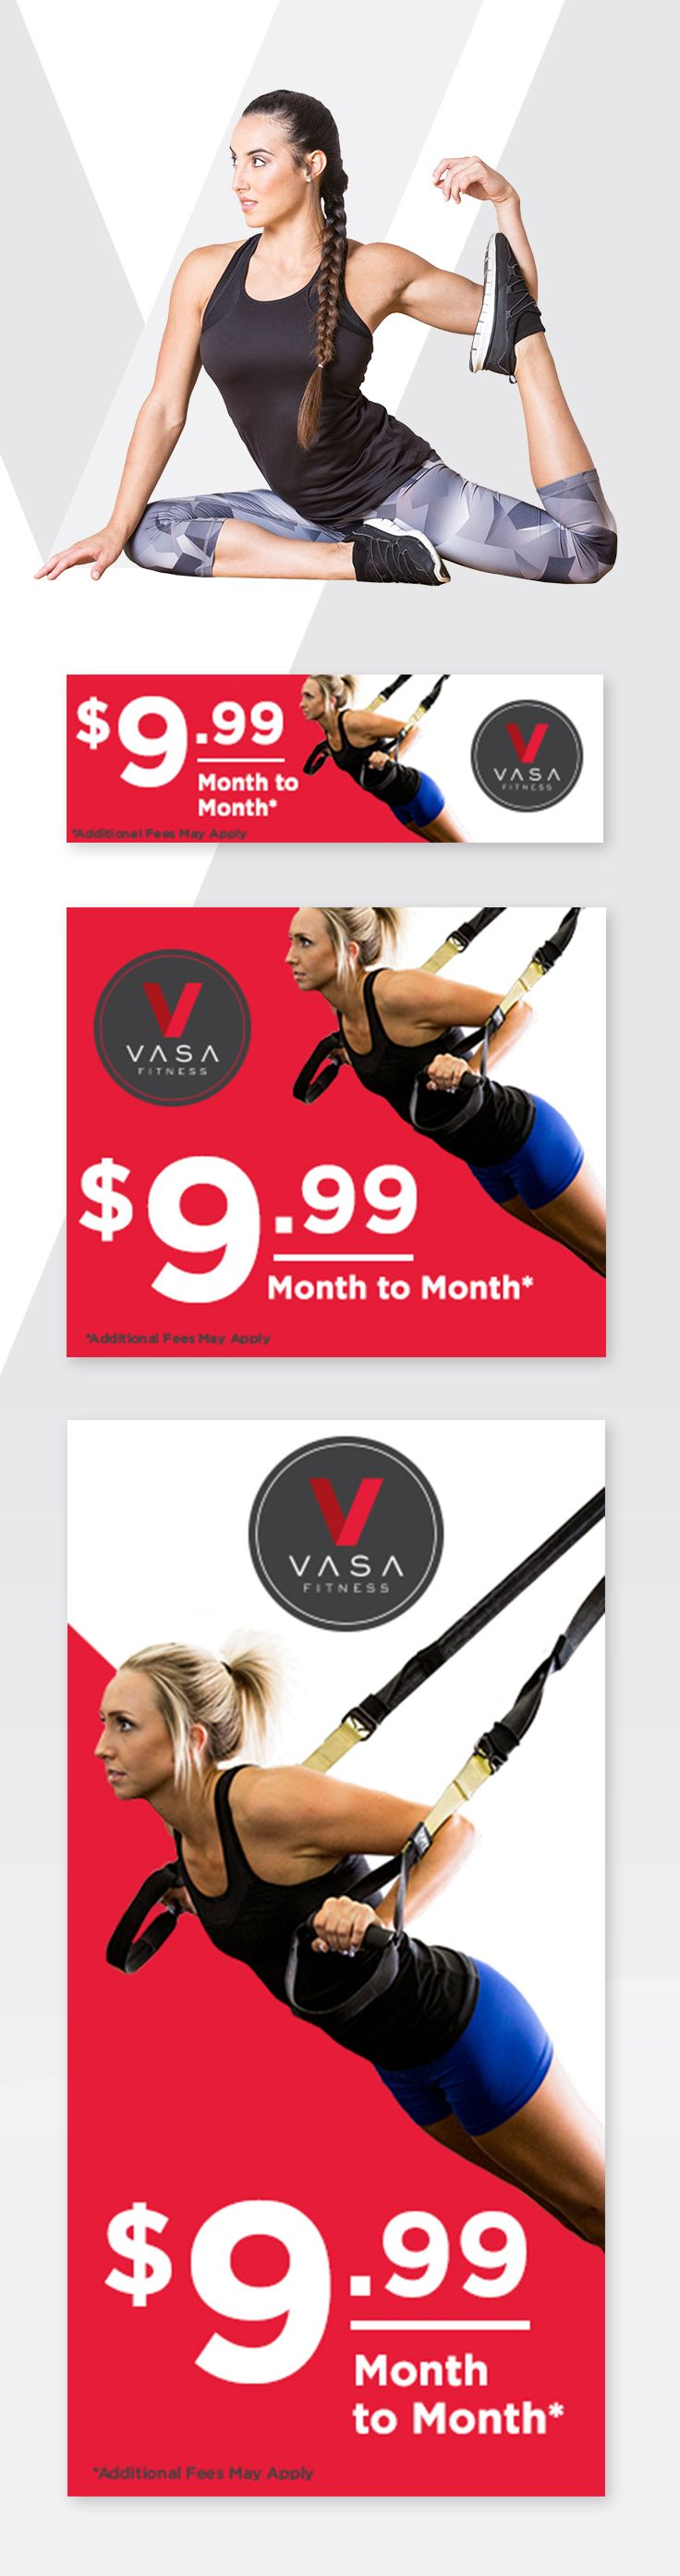 Digital ad design for VASA Fitness by Epic Marketing. #digital #digitaladvertising  #VASAfit #design #fitness #workout #epicmarketing